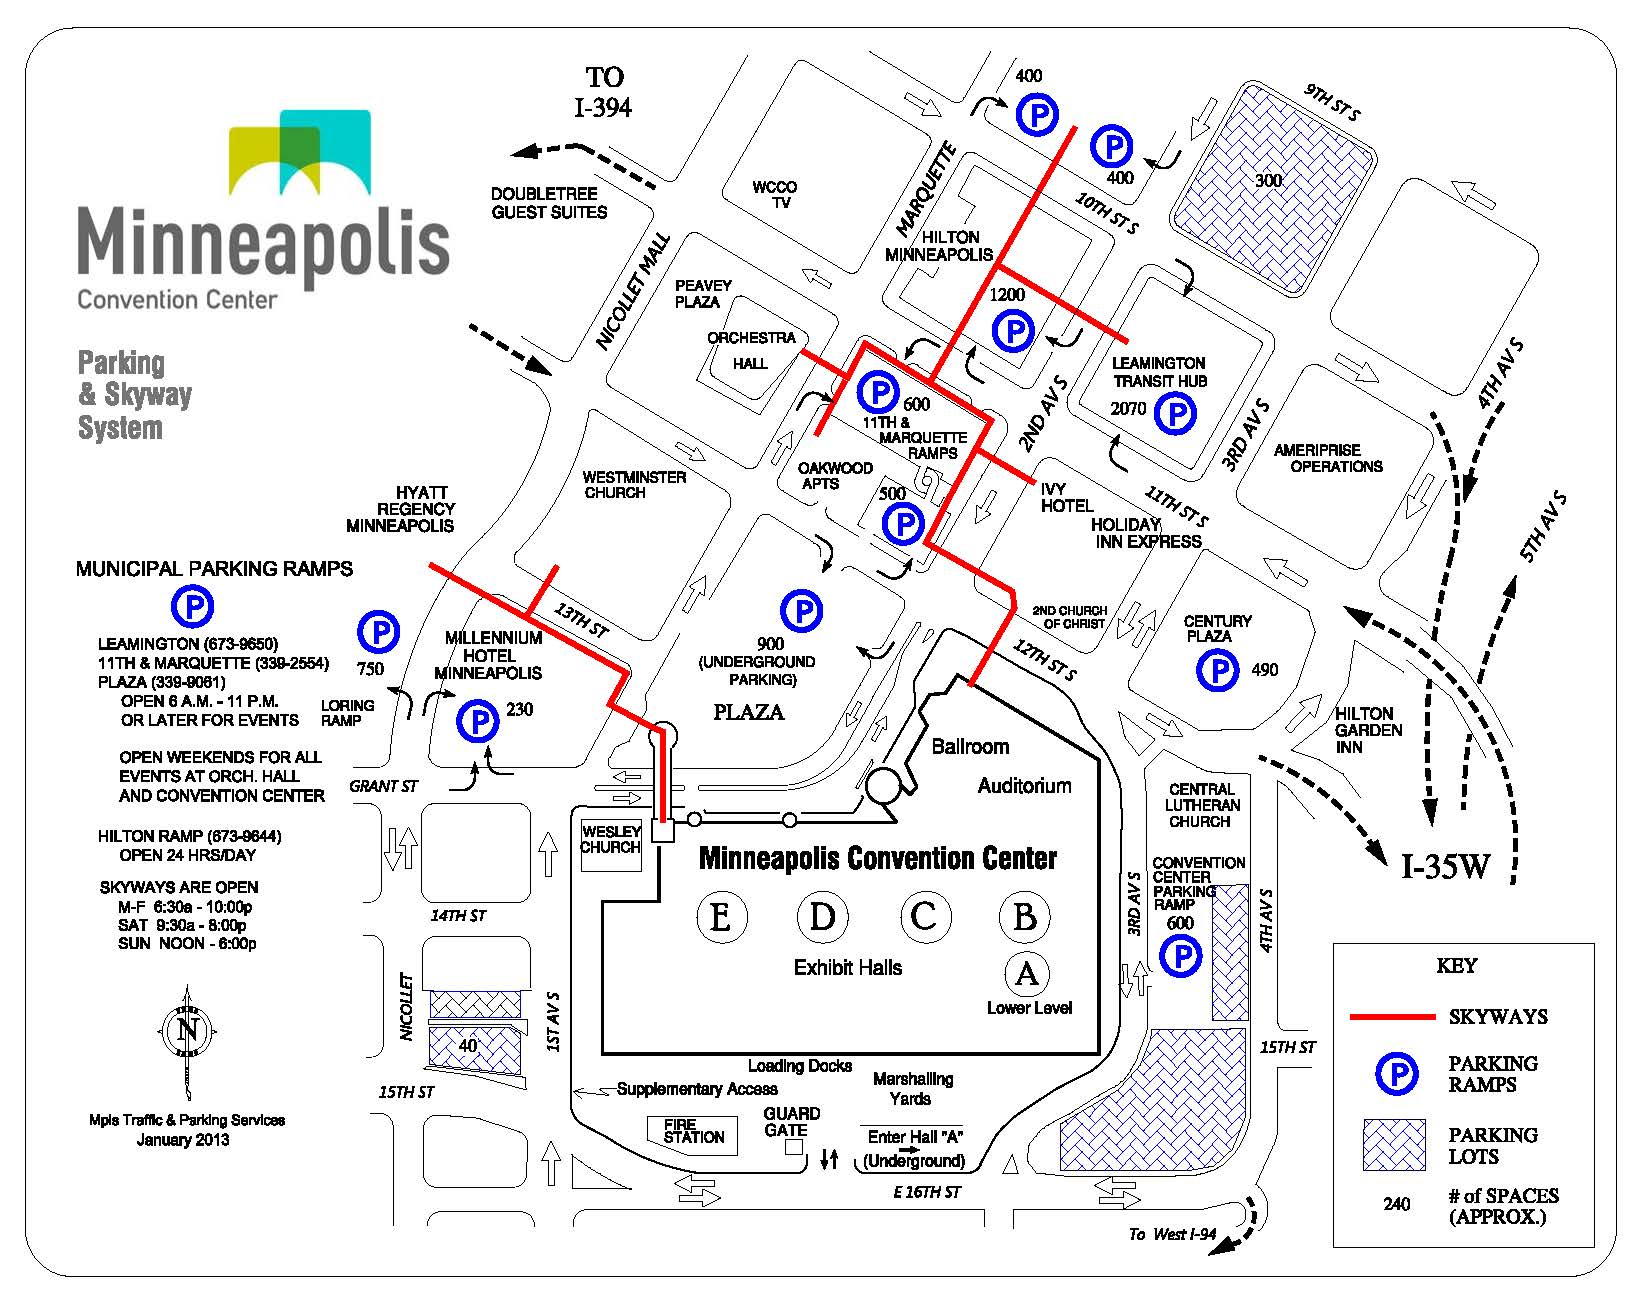 MCC City Map with Parking